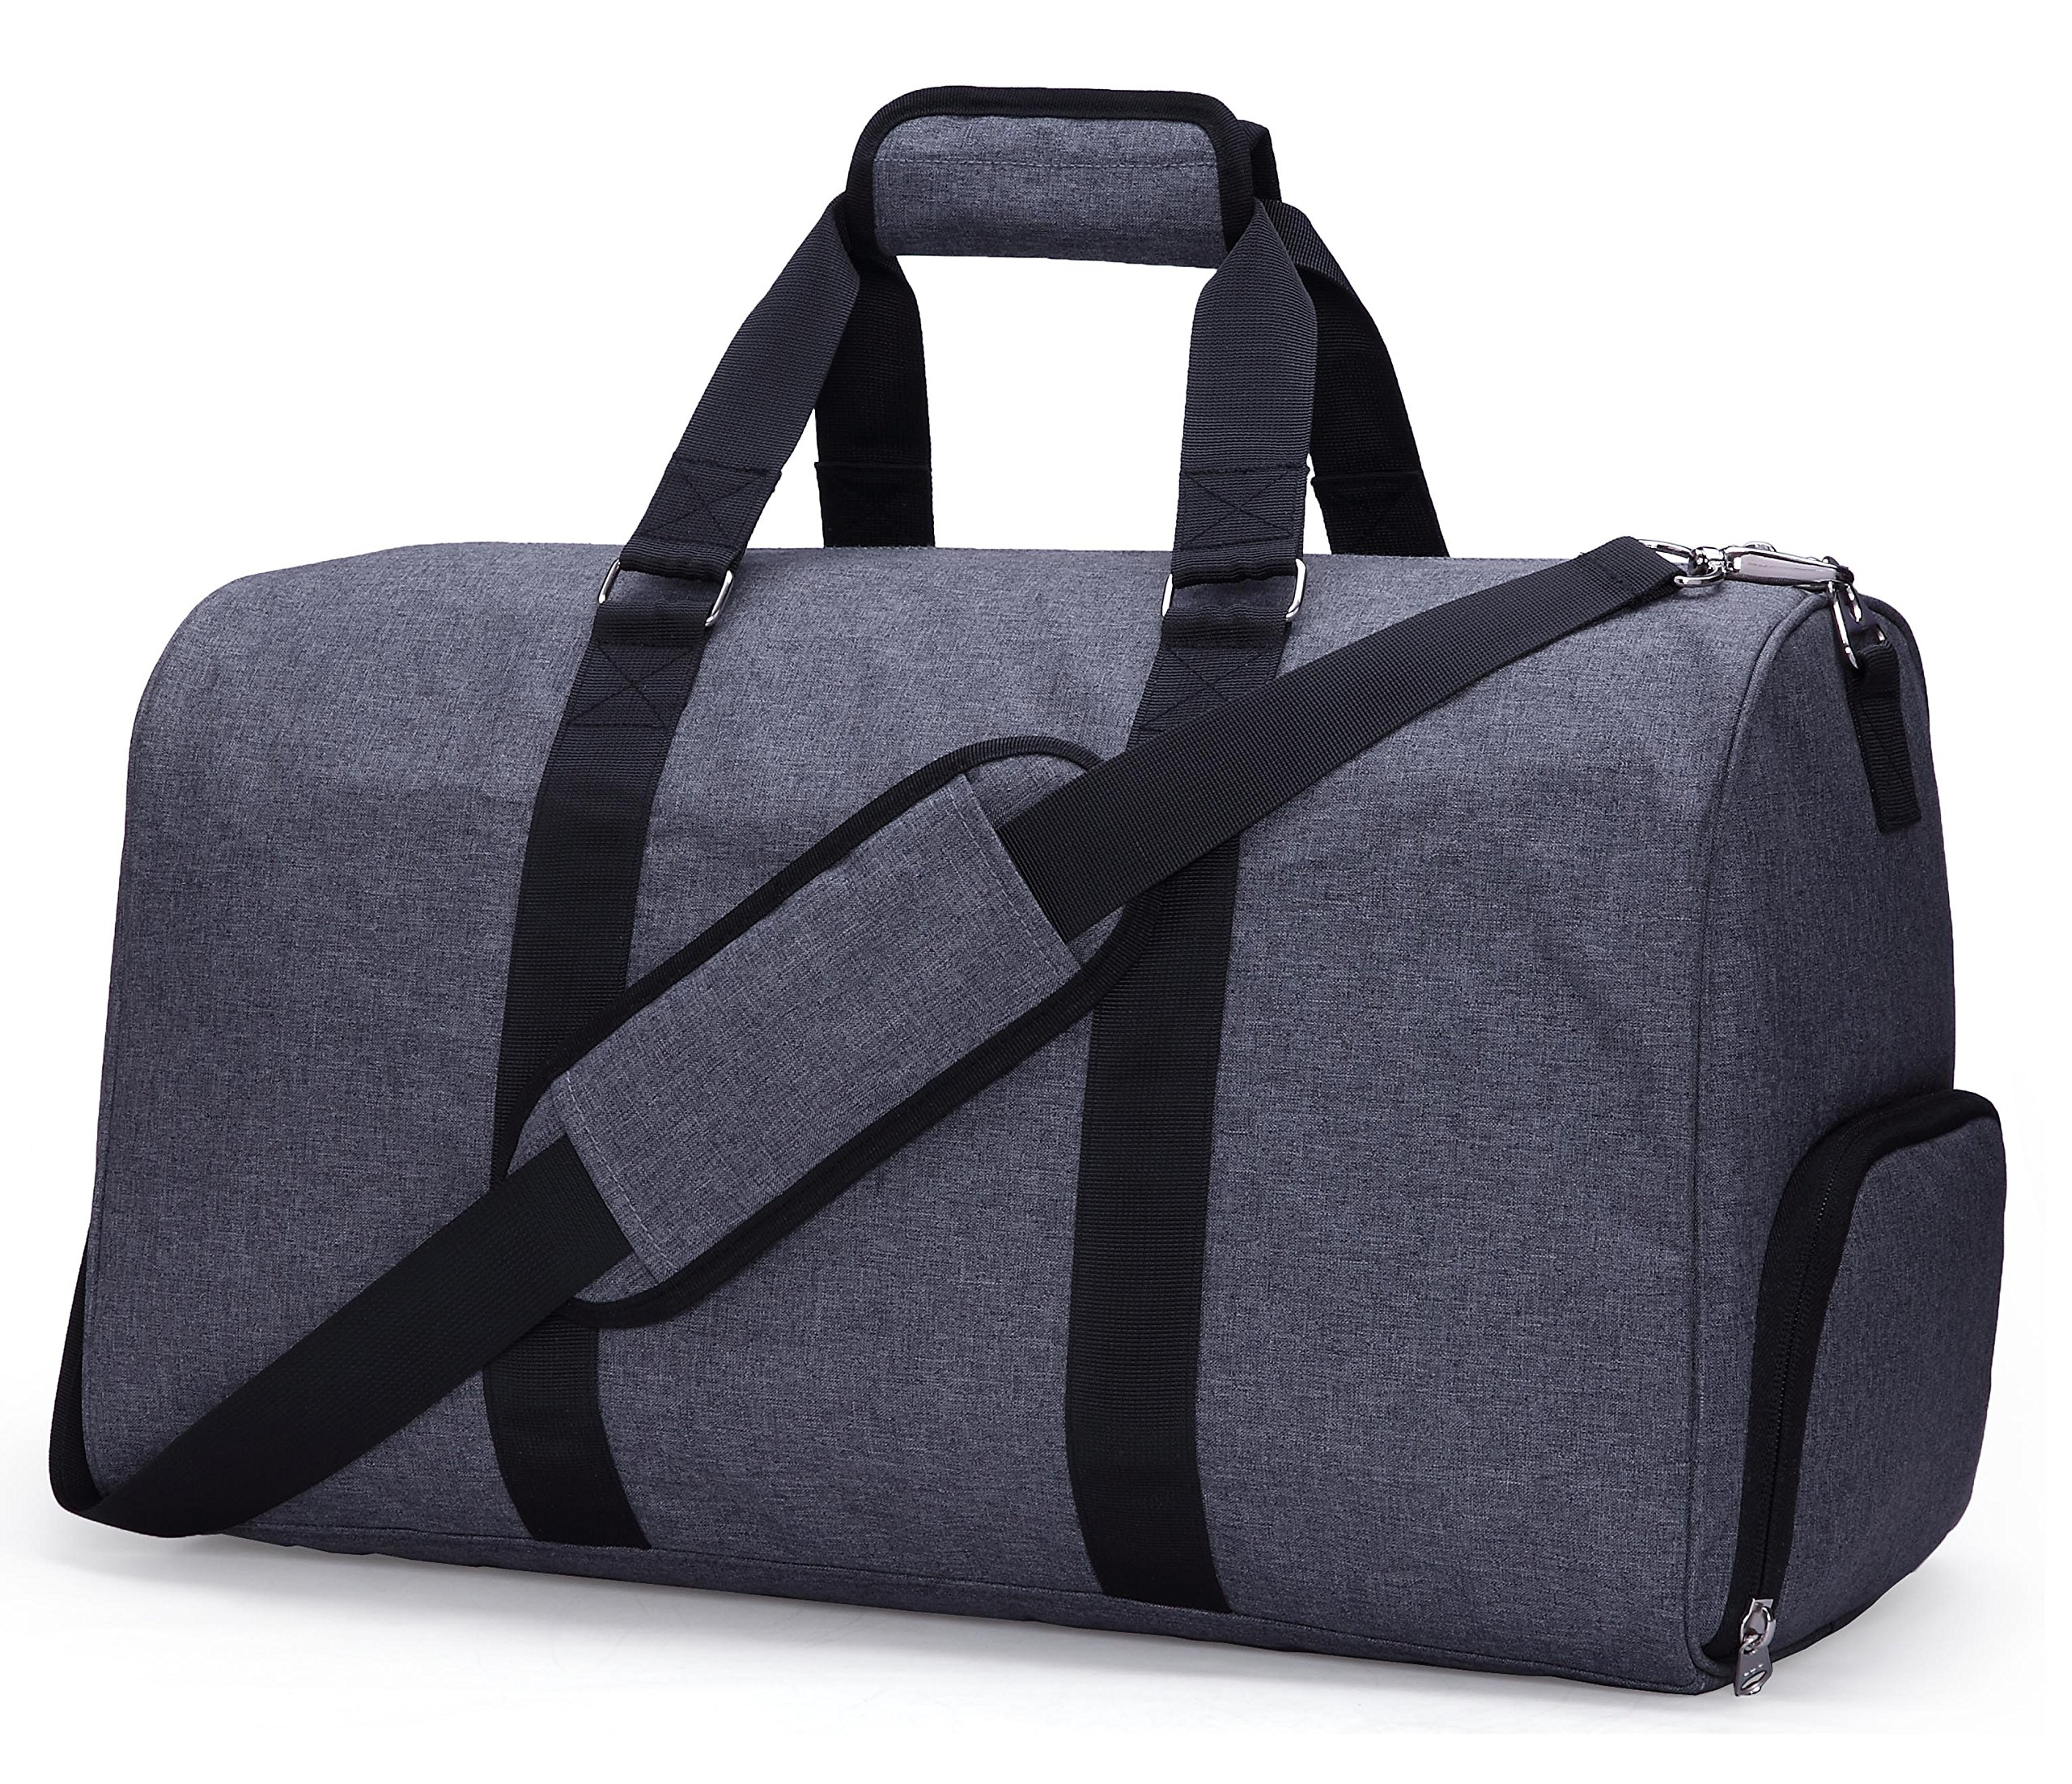 MIER Gym Duffel Bag for Men and Women